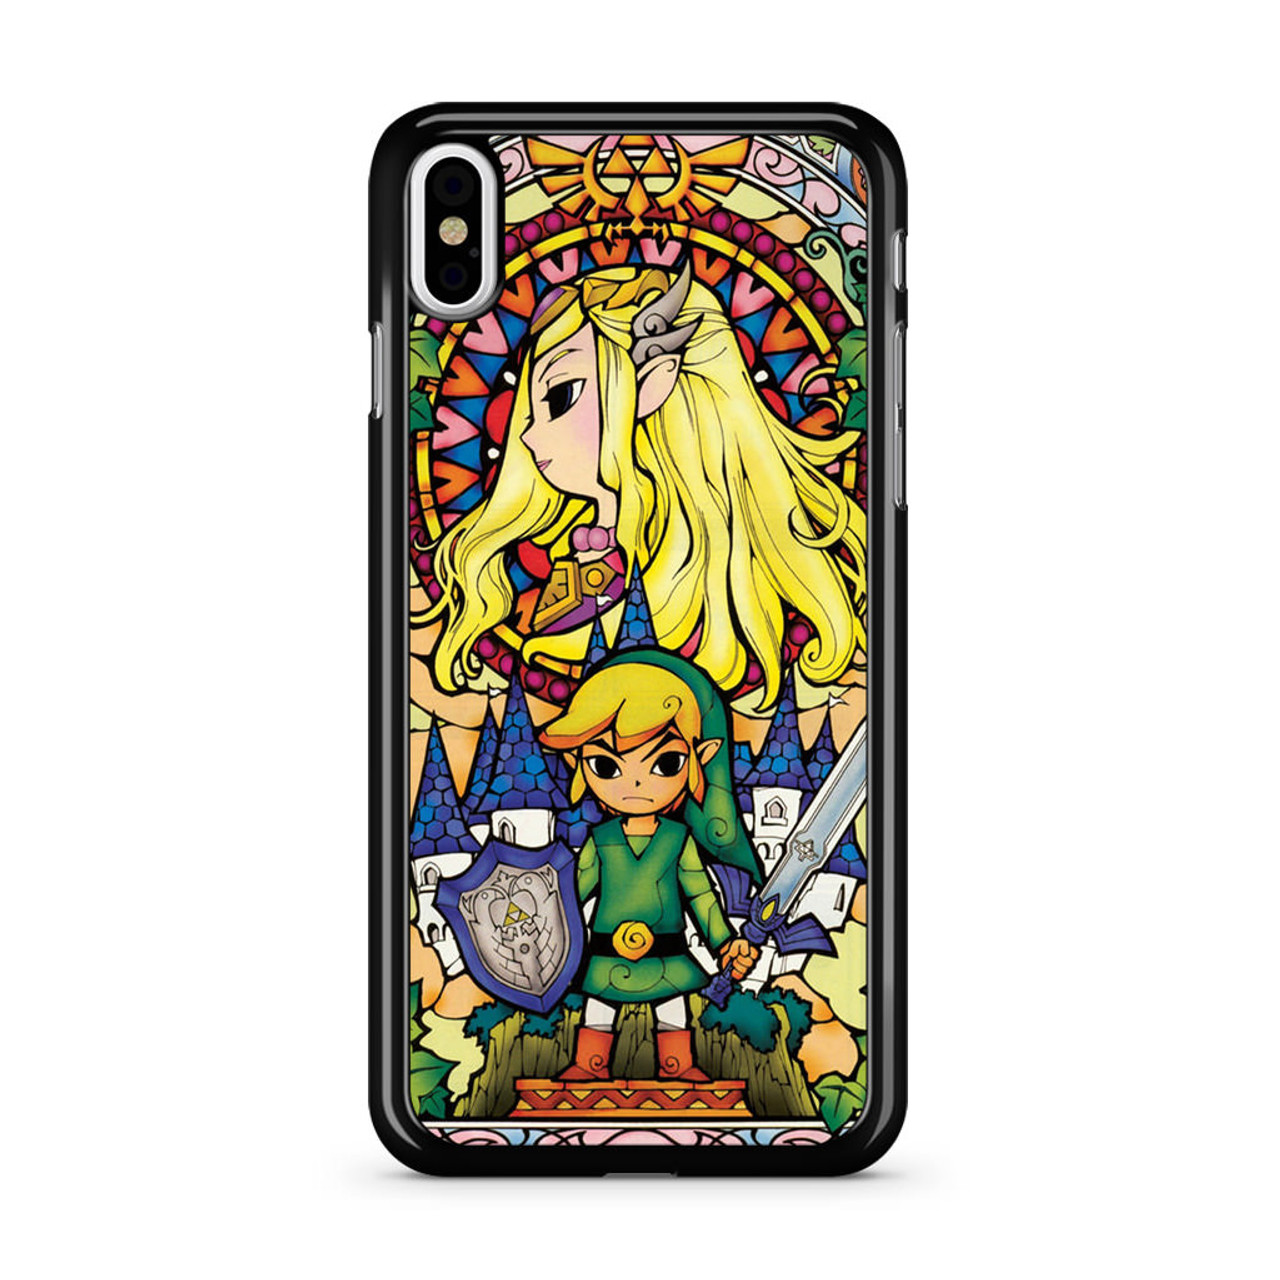 iphone xs case zelda